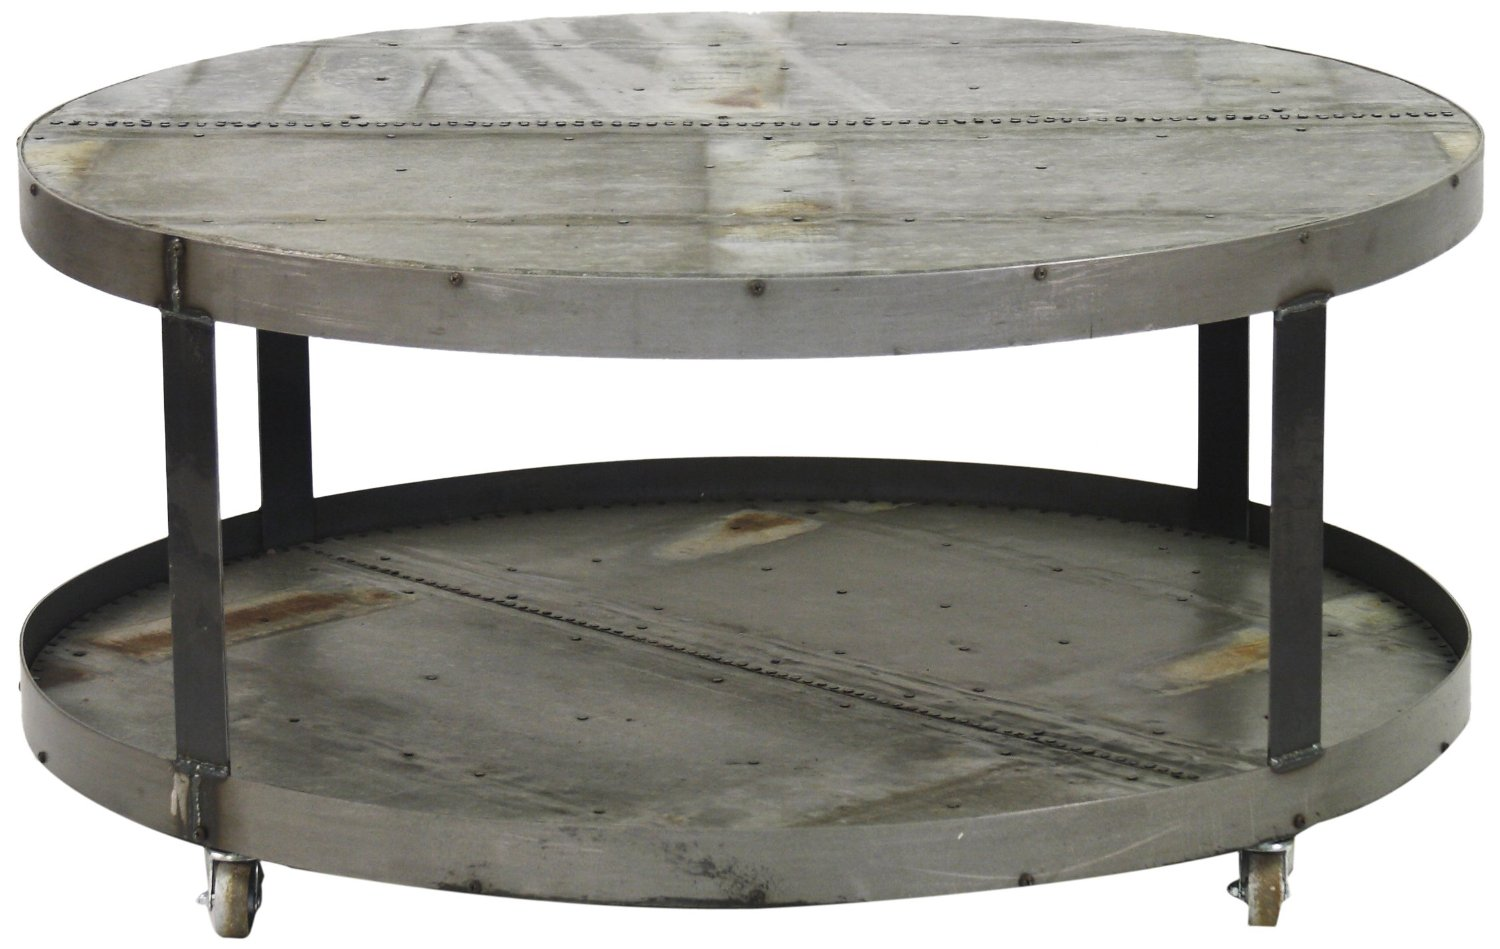 portable-round-metal-coffee-table-grey-round-steel-or-metal-coffee-table-metal-round-coffee-table-coffee-tables-cheap-for-sale (Image 6 of 10)